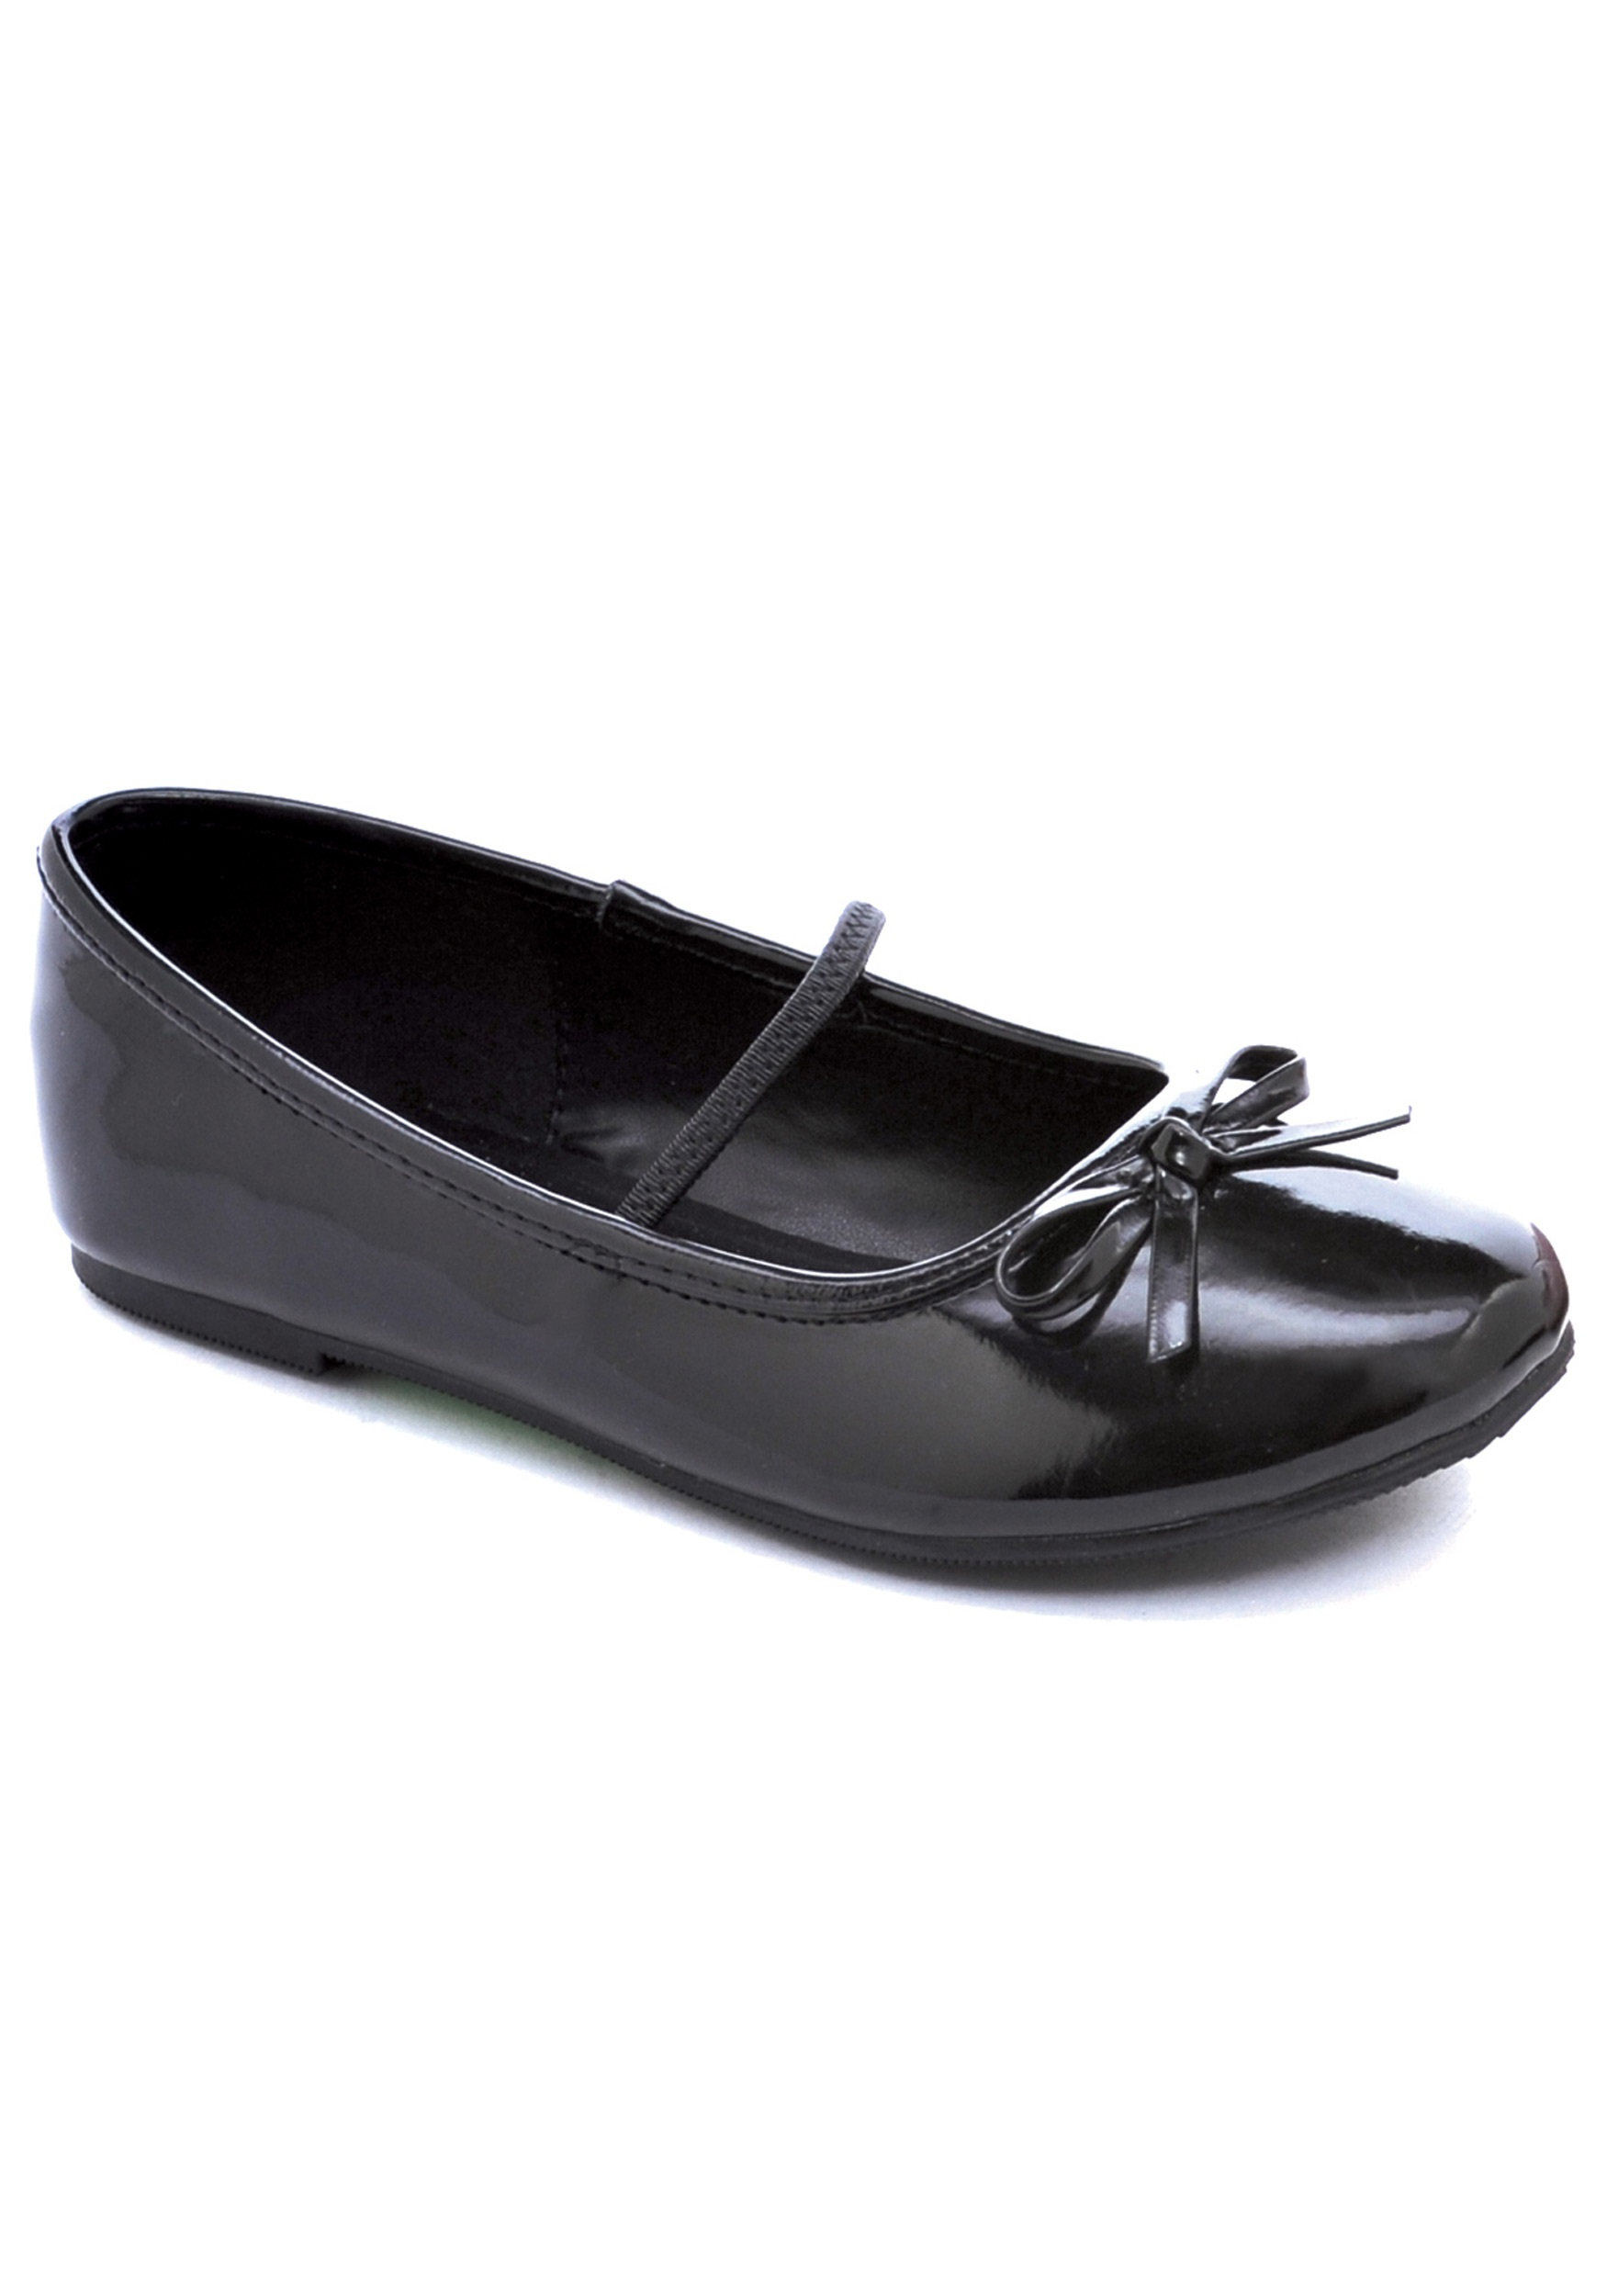 girls-black-ballet-flats.jpg